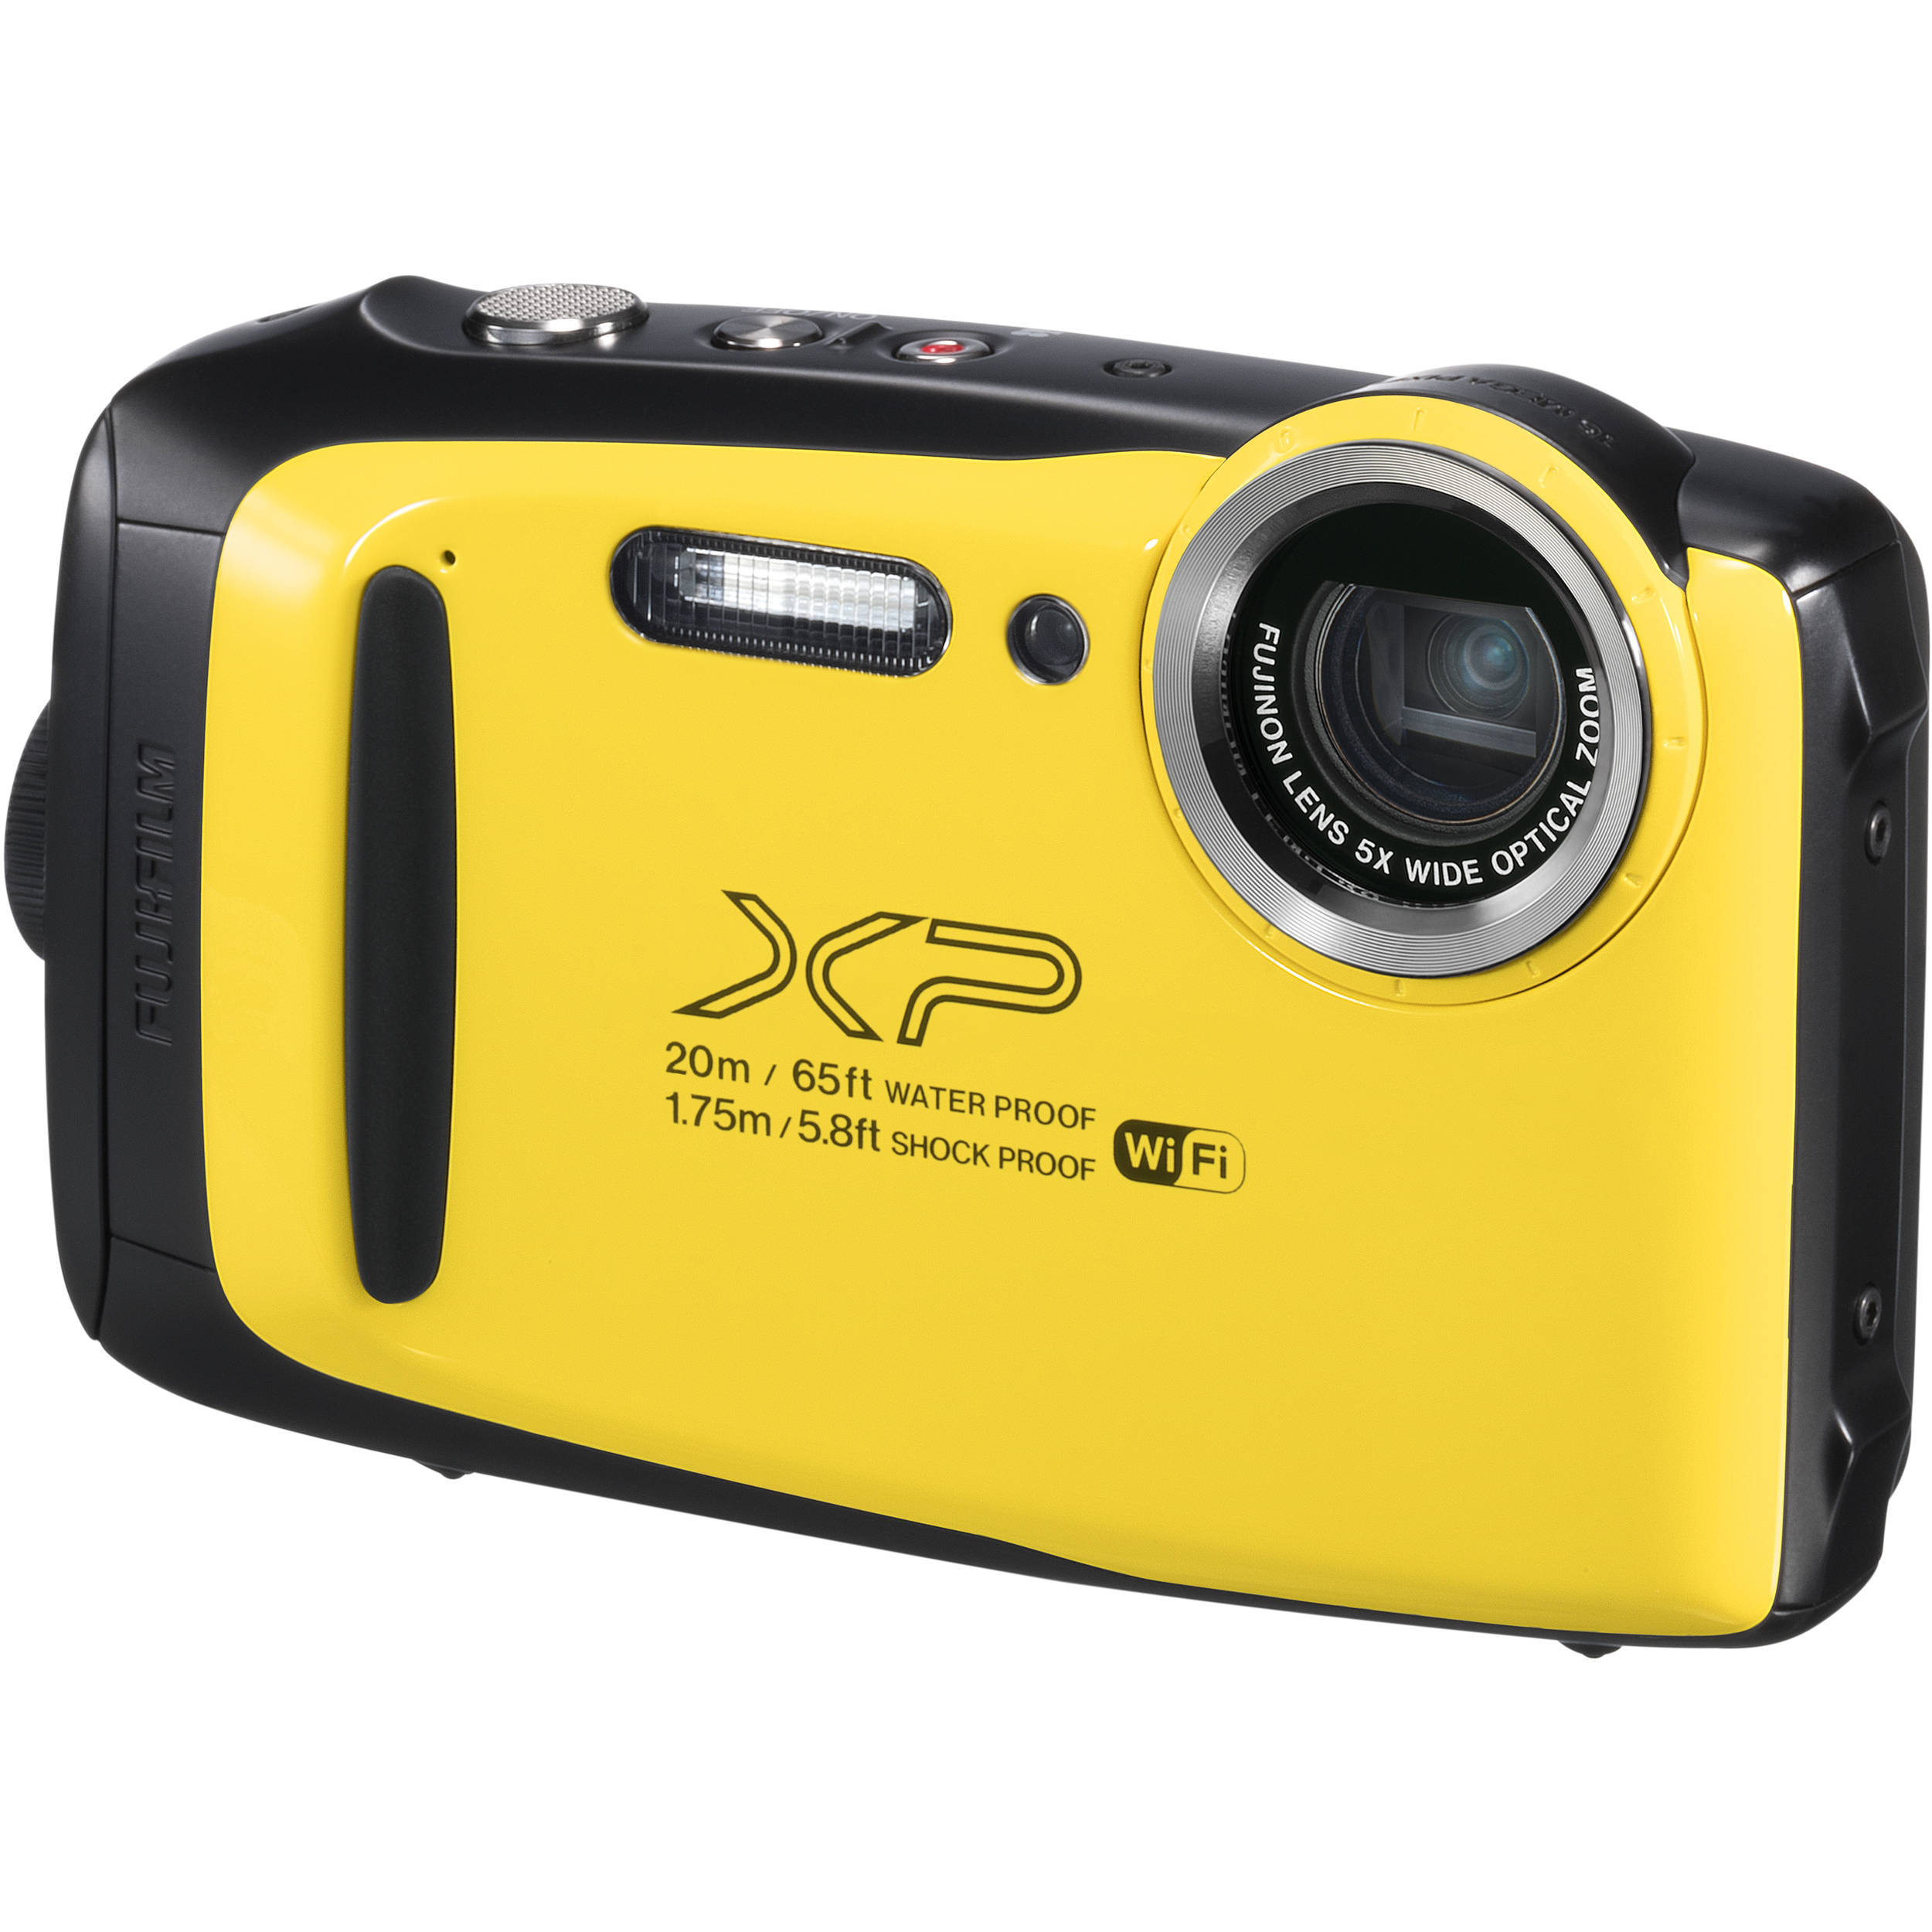 Fujifilm Finepix Xp130 C U00e1mara Digital